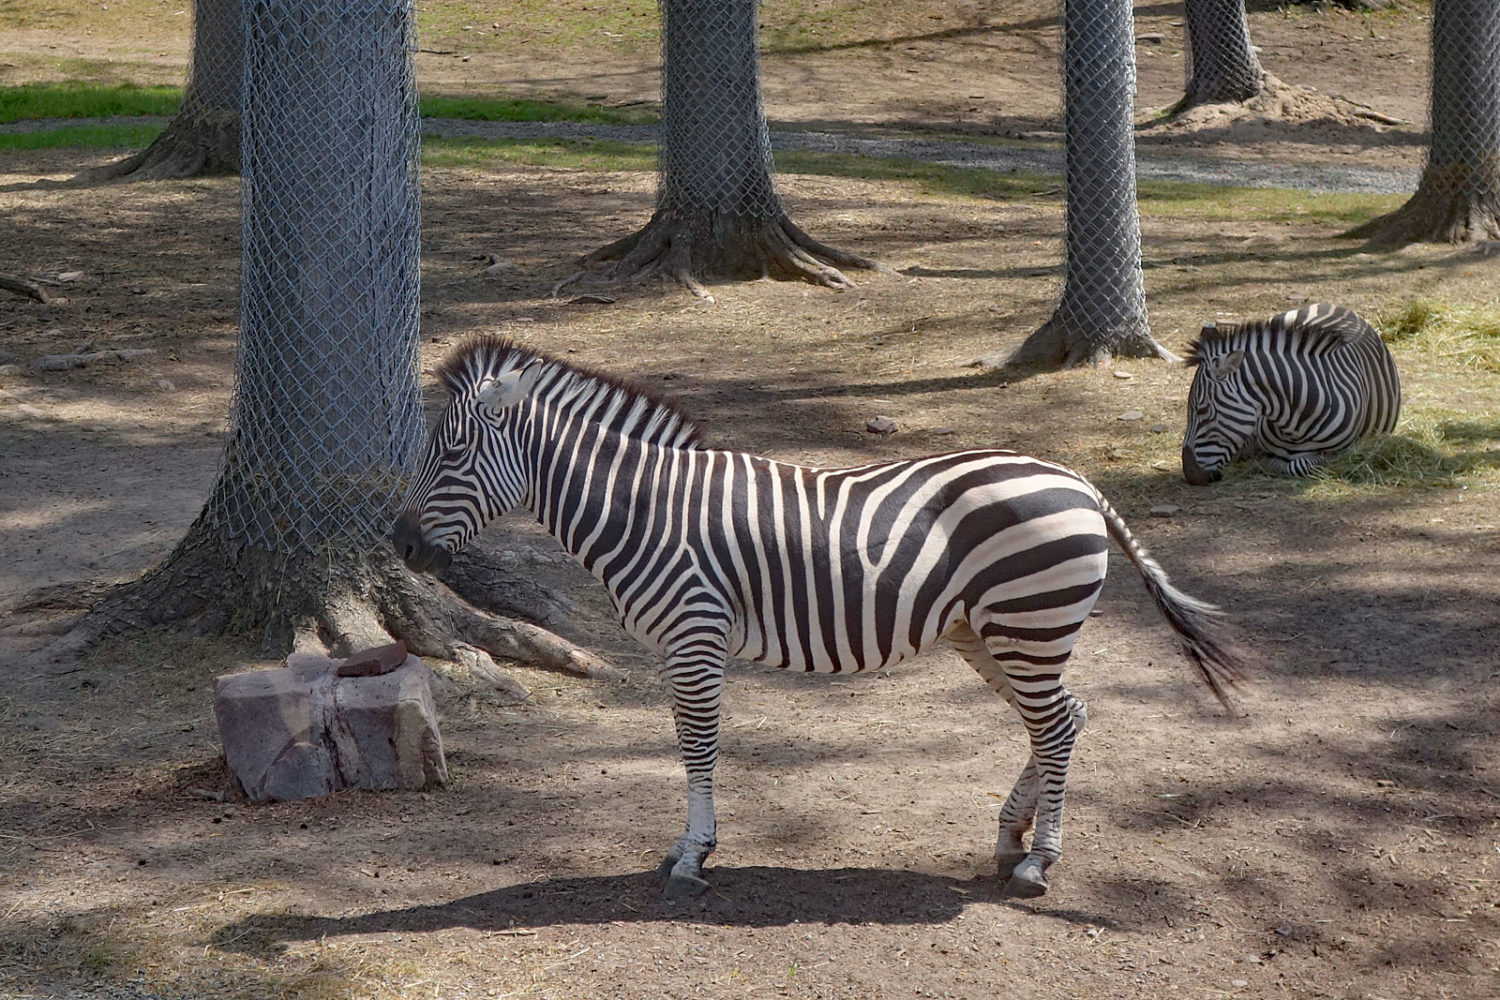 Zebra at the Seneca Park Zoo2019